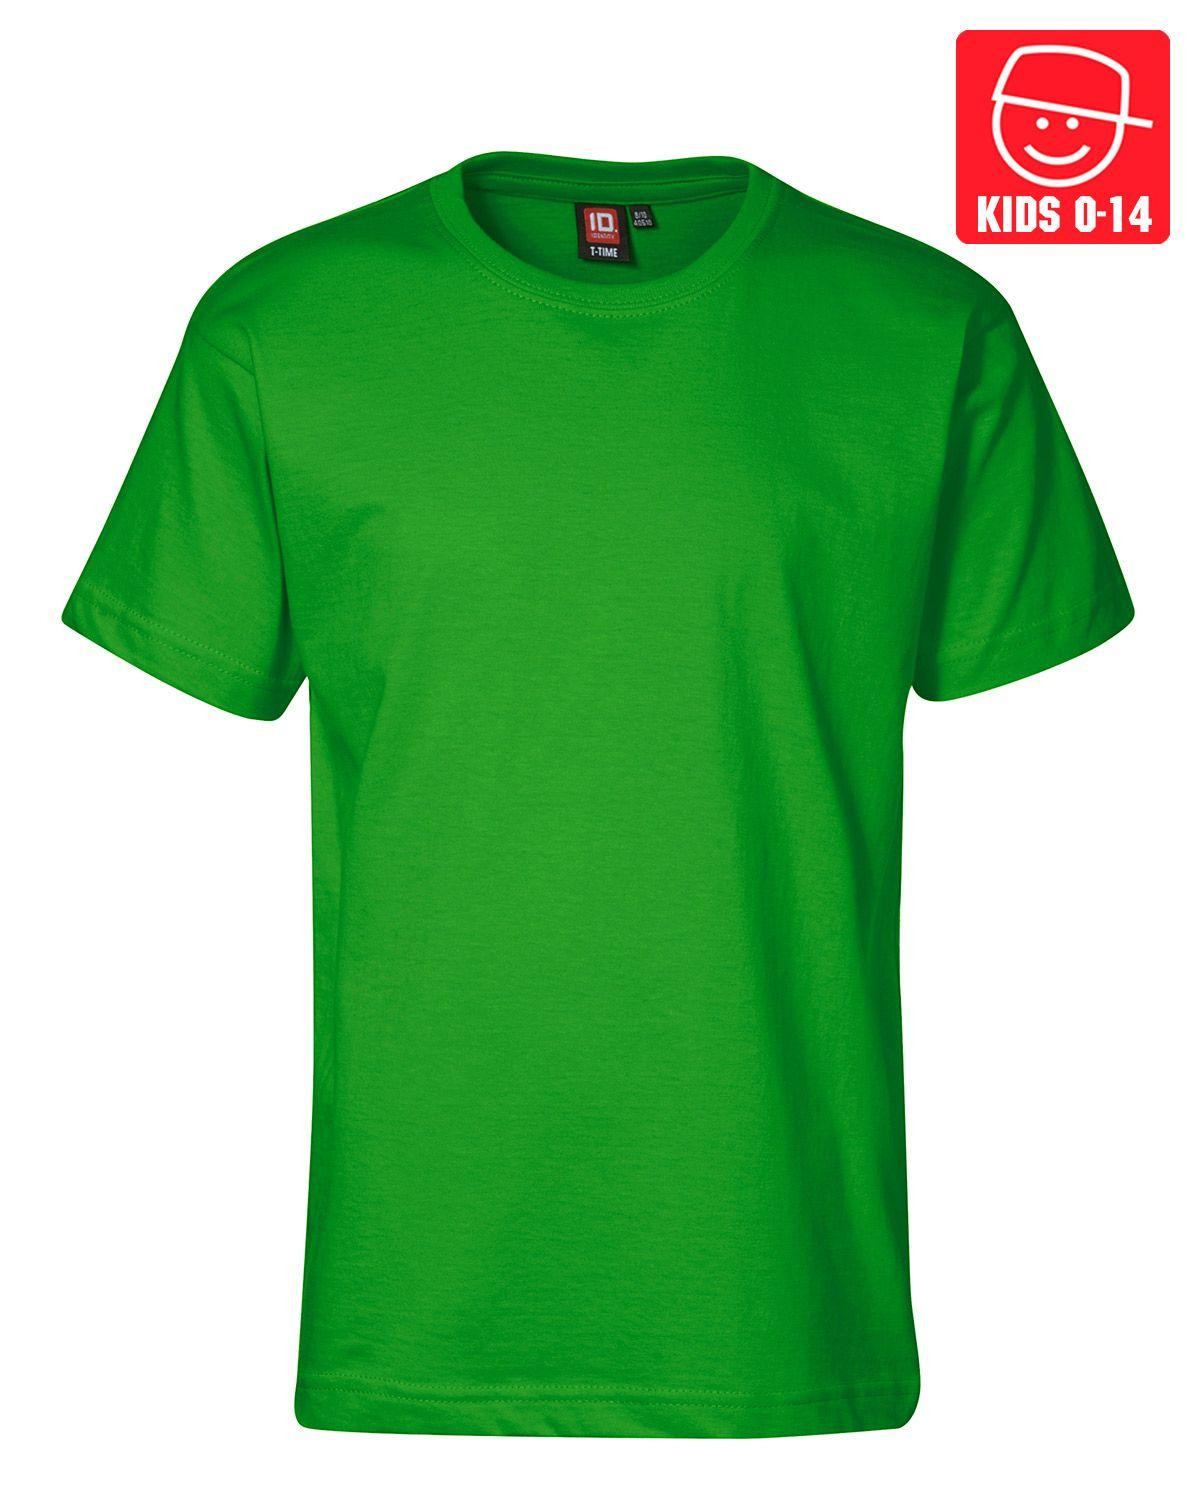 Image of   ID T-TIME T-shirt (Grøn, 128)